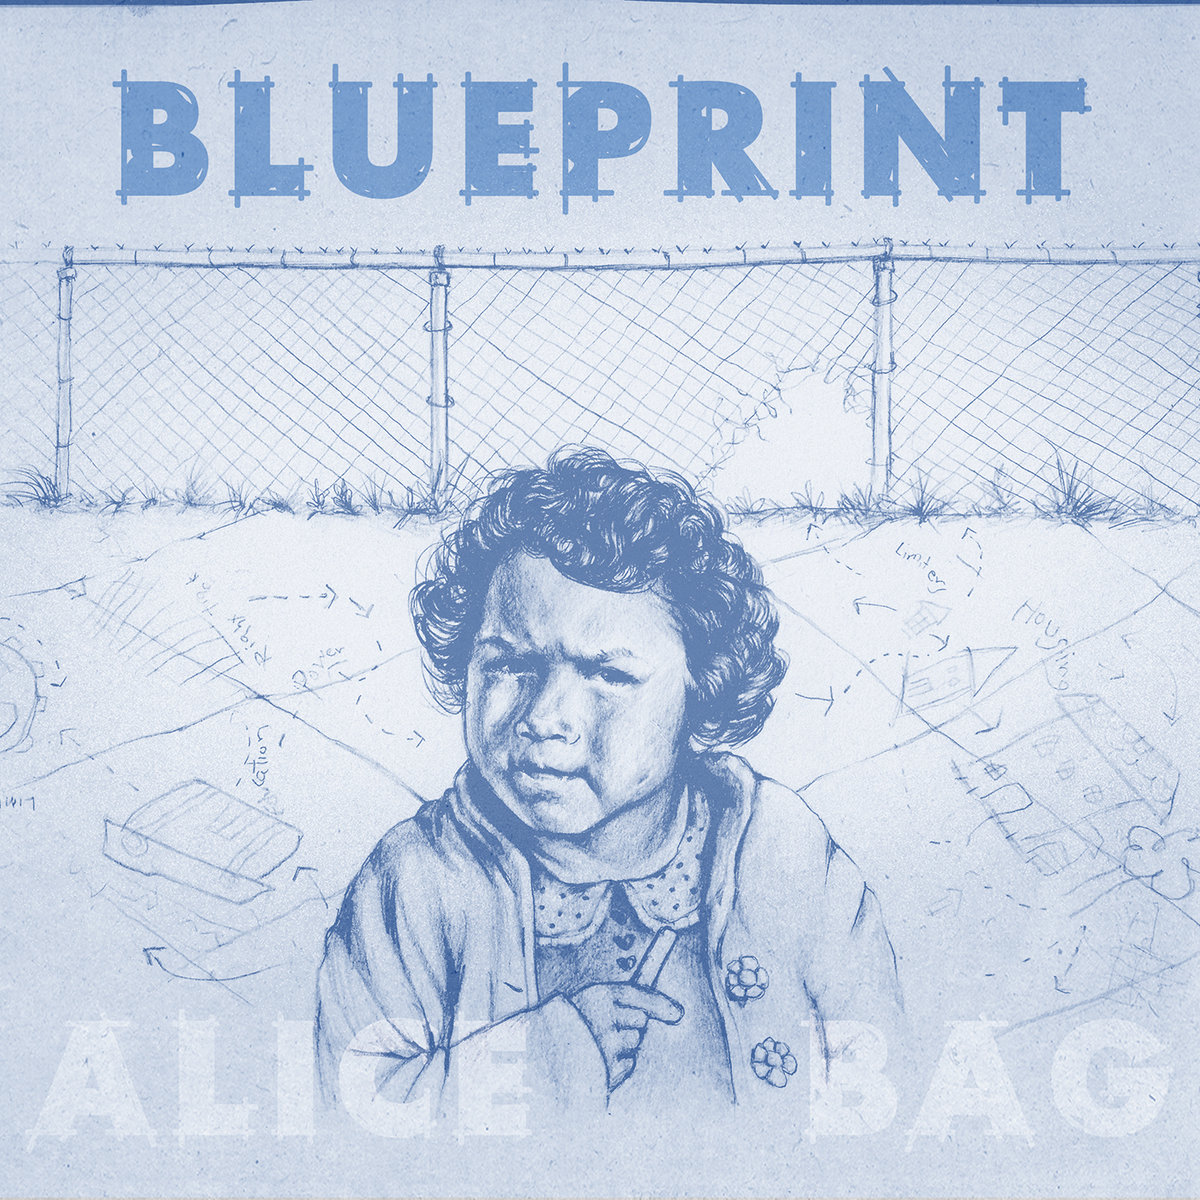 Blueprint alice bag blueprint by alice bag malvernweather Gallery